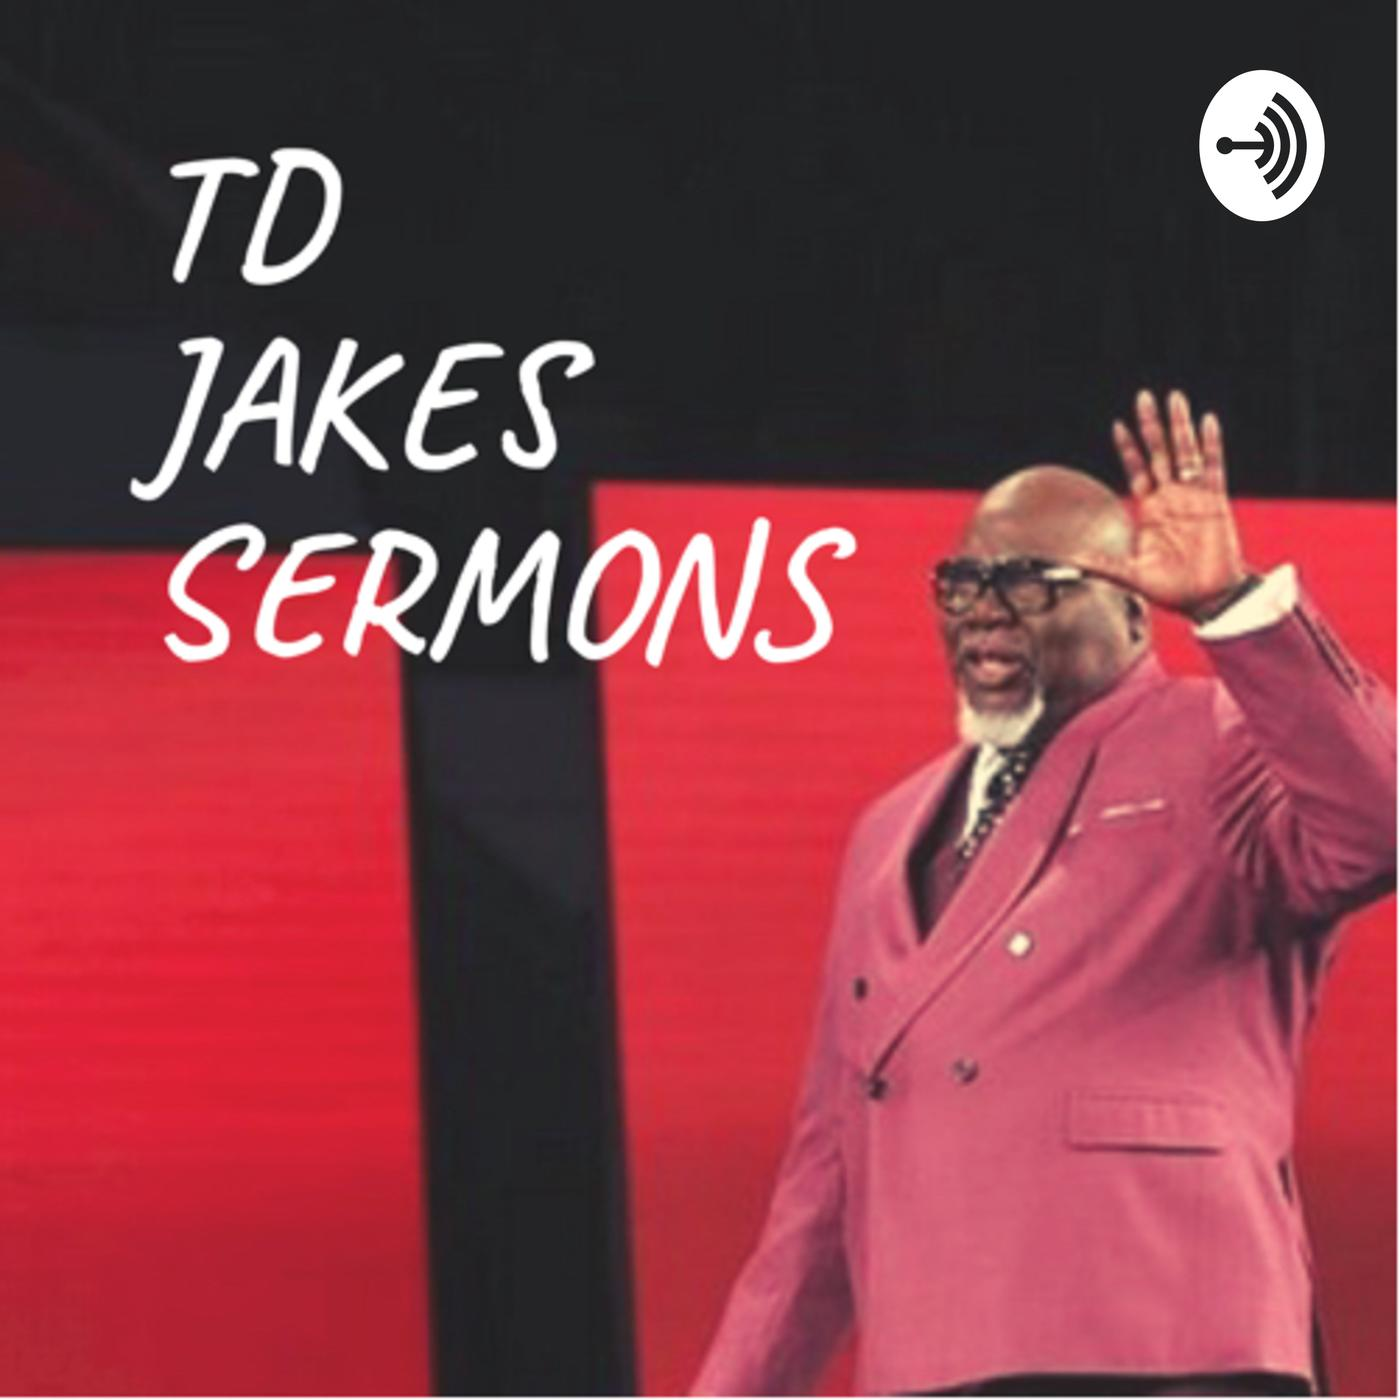 T.D. Jakes (December-27-2019) Sermon: Is It Well With Your